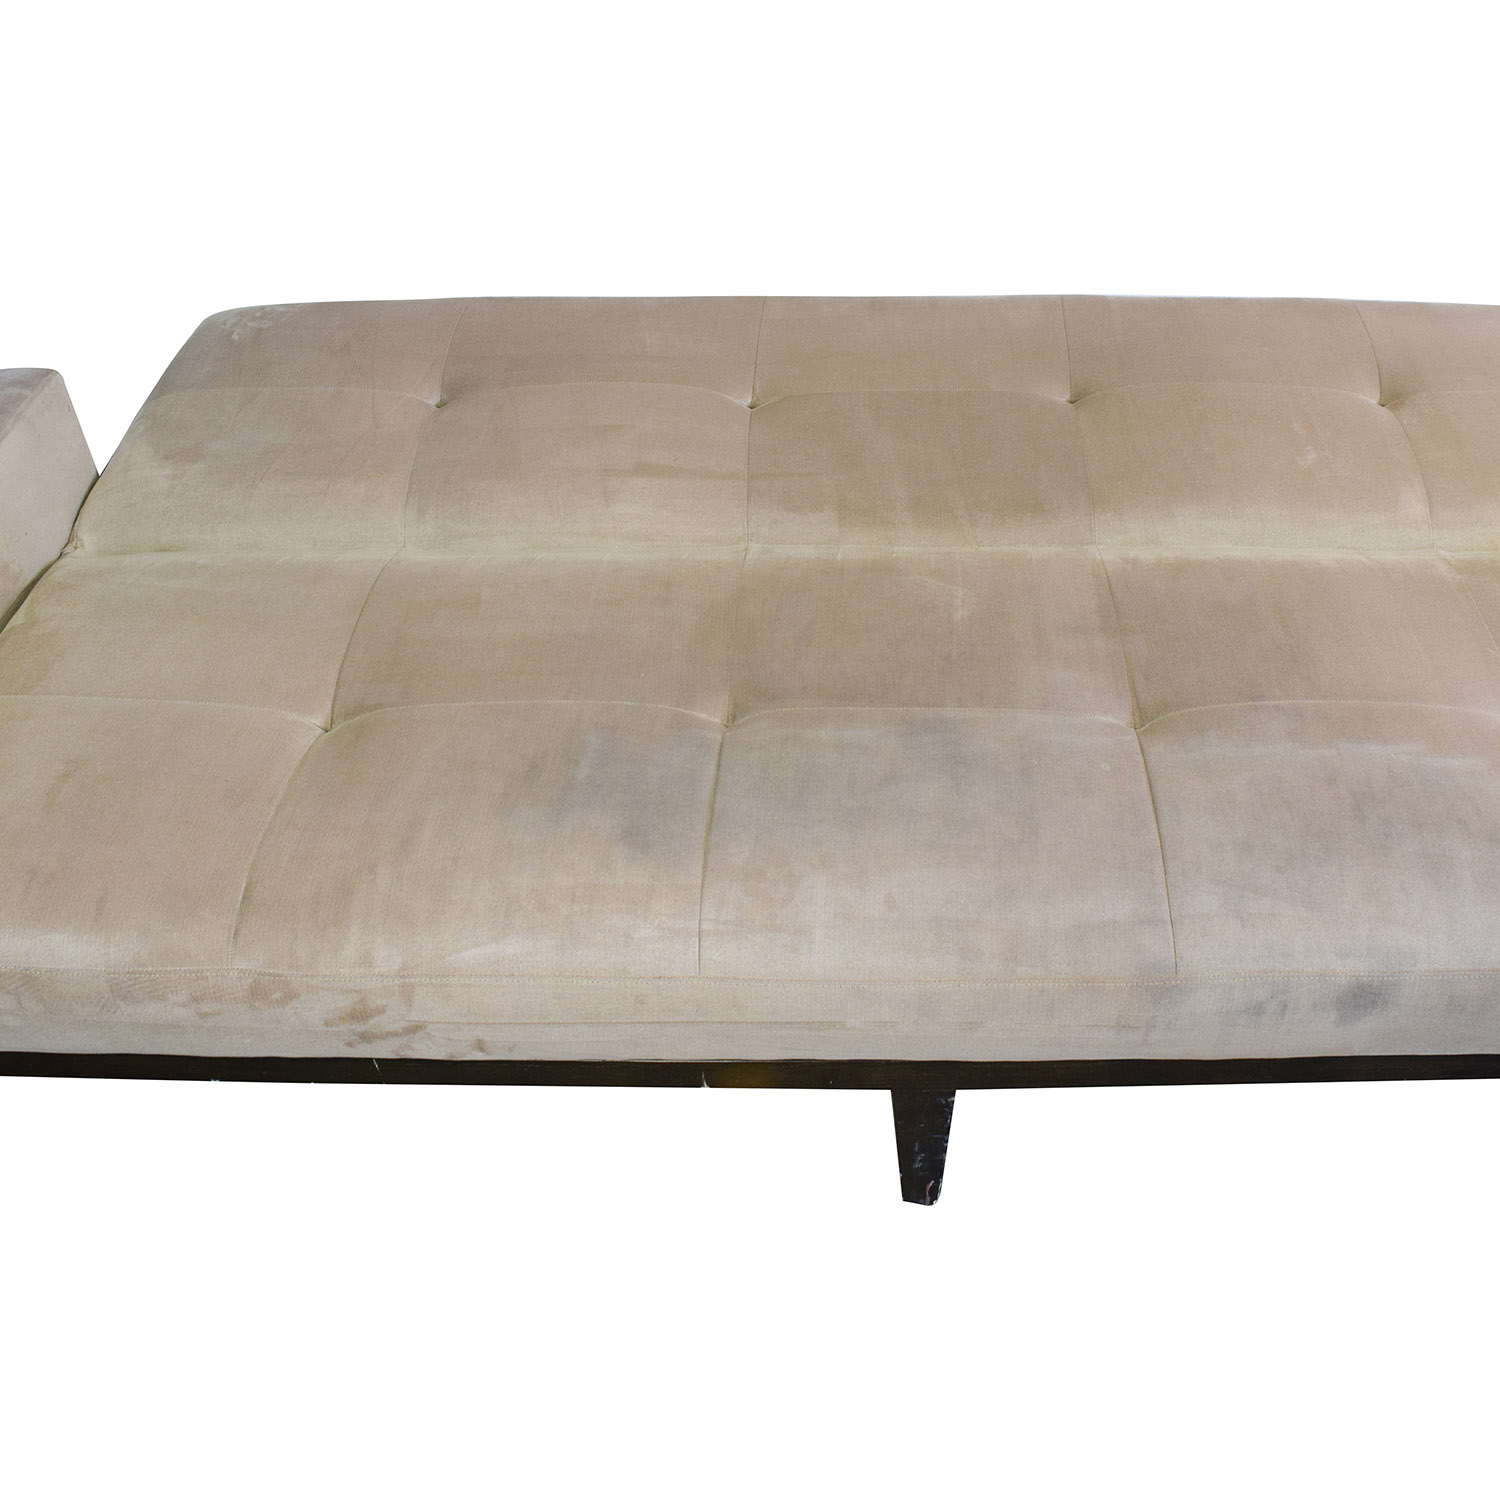 crate and barrel crate  u0026 barrel beige tufted futon sofa bed price 82  off   crate and barrel crate  u0026 barrel beige tufted futon sofa      rh   furnishare